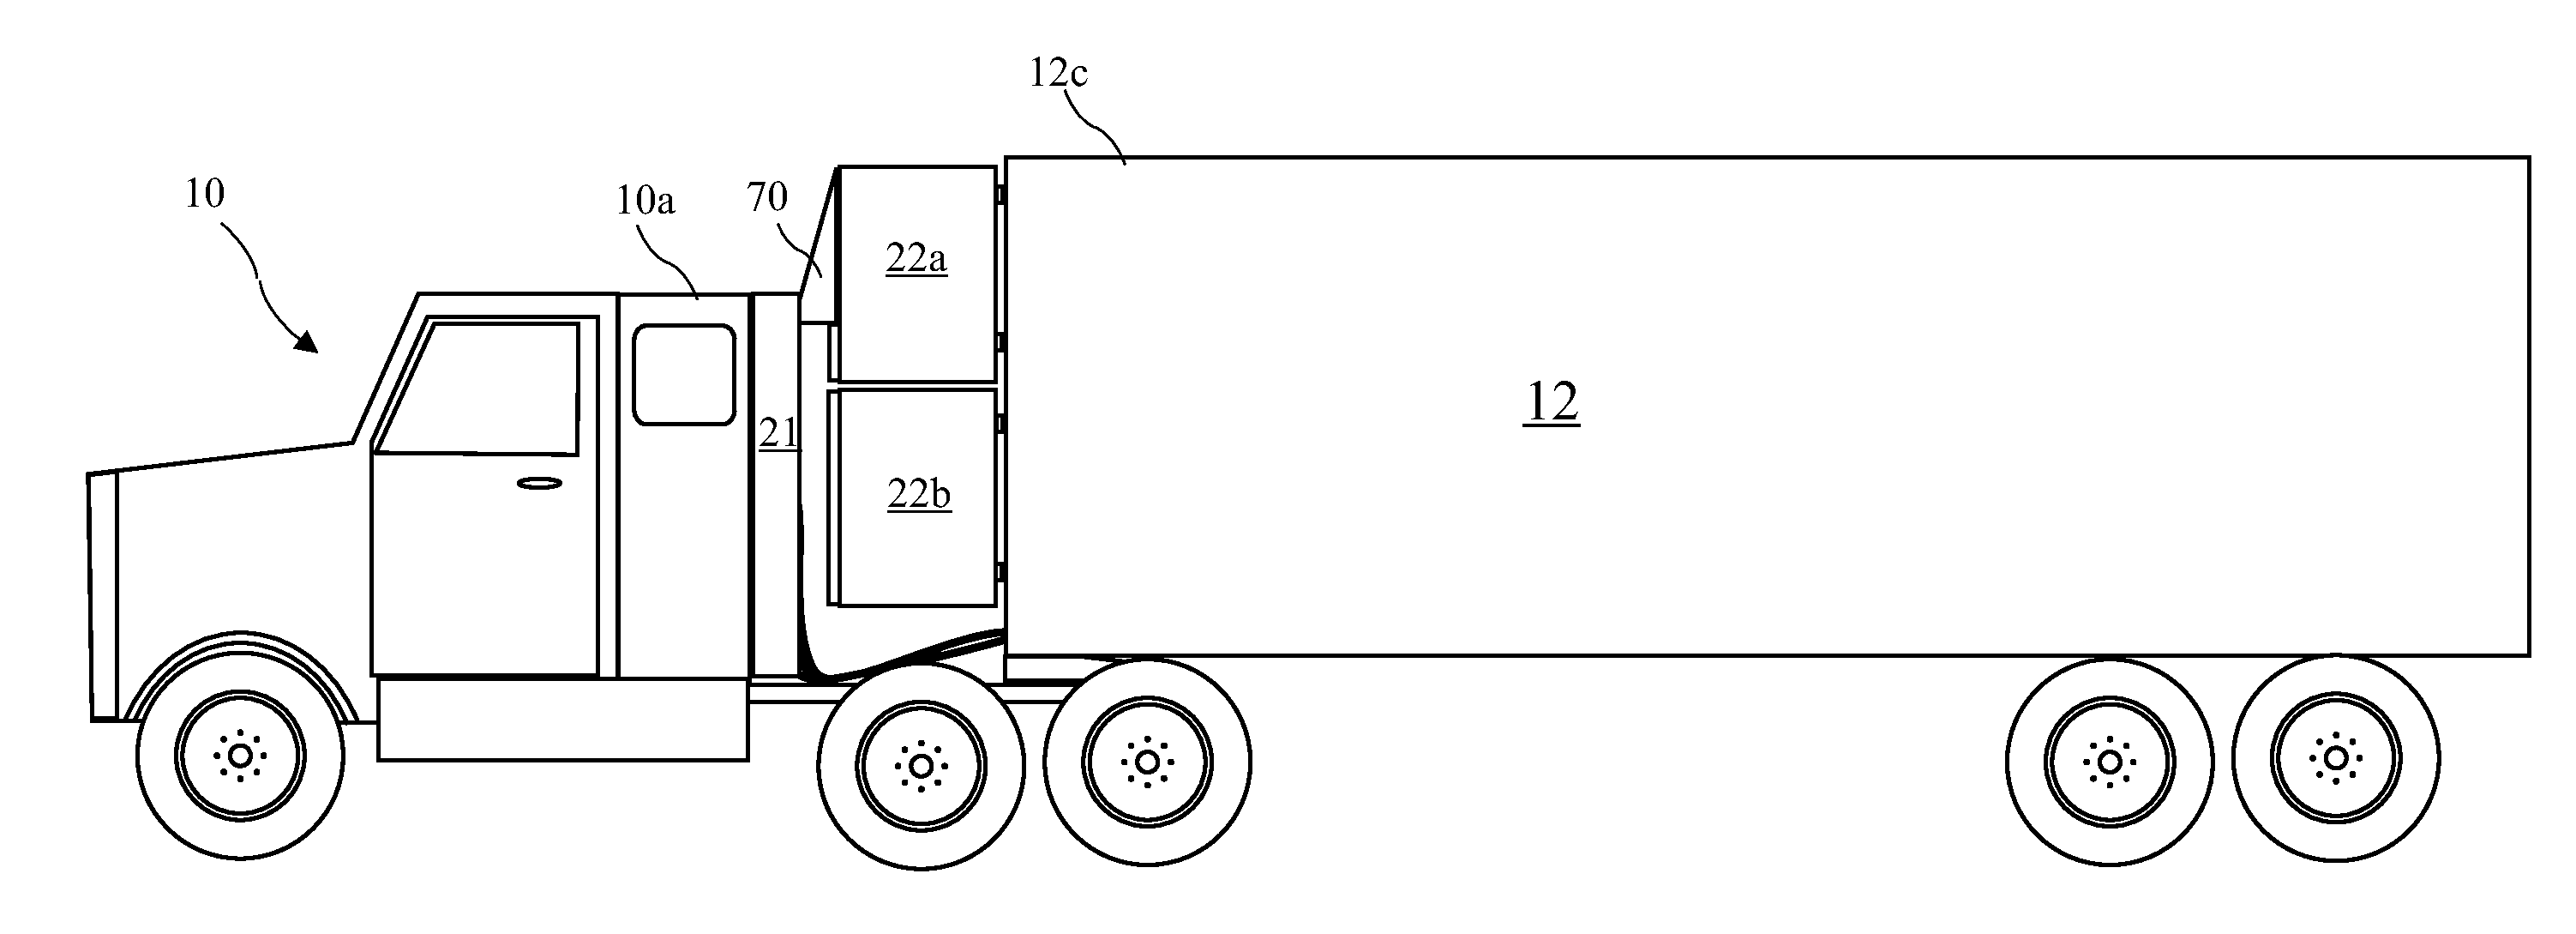 semi truck inspection diagram